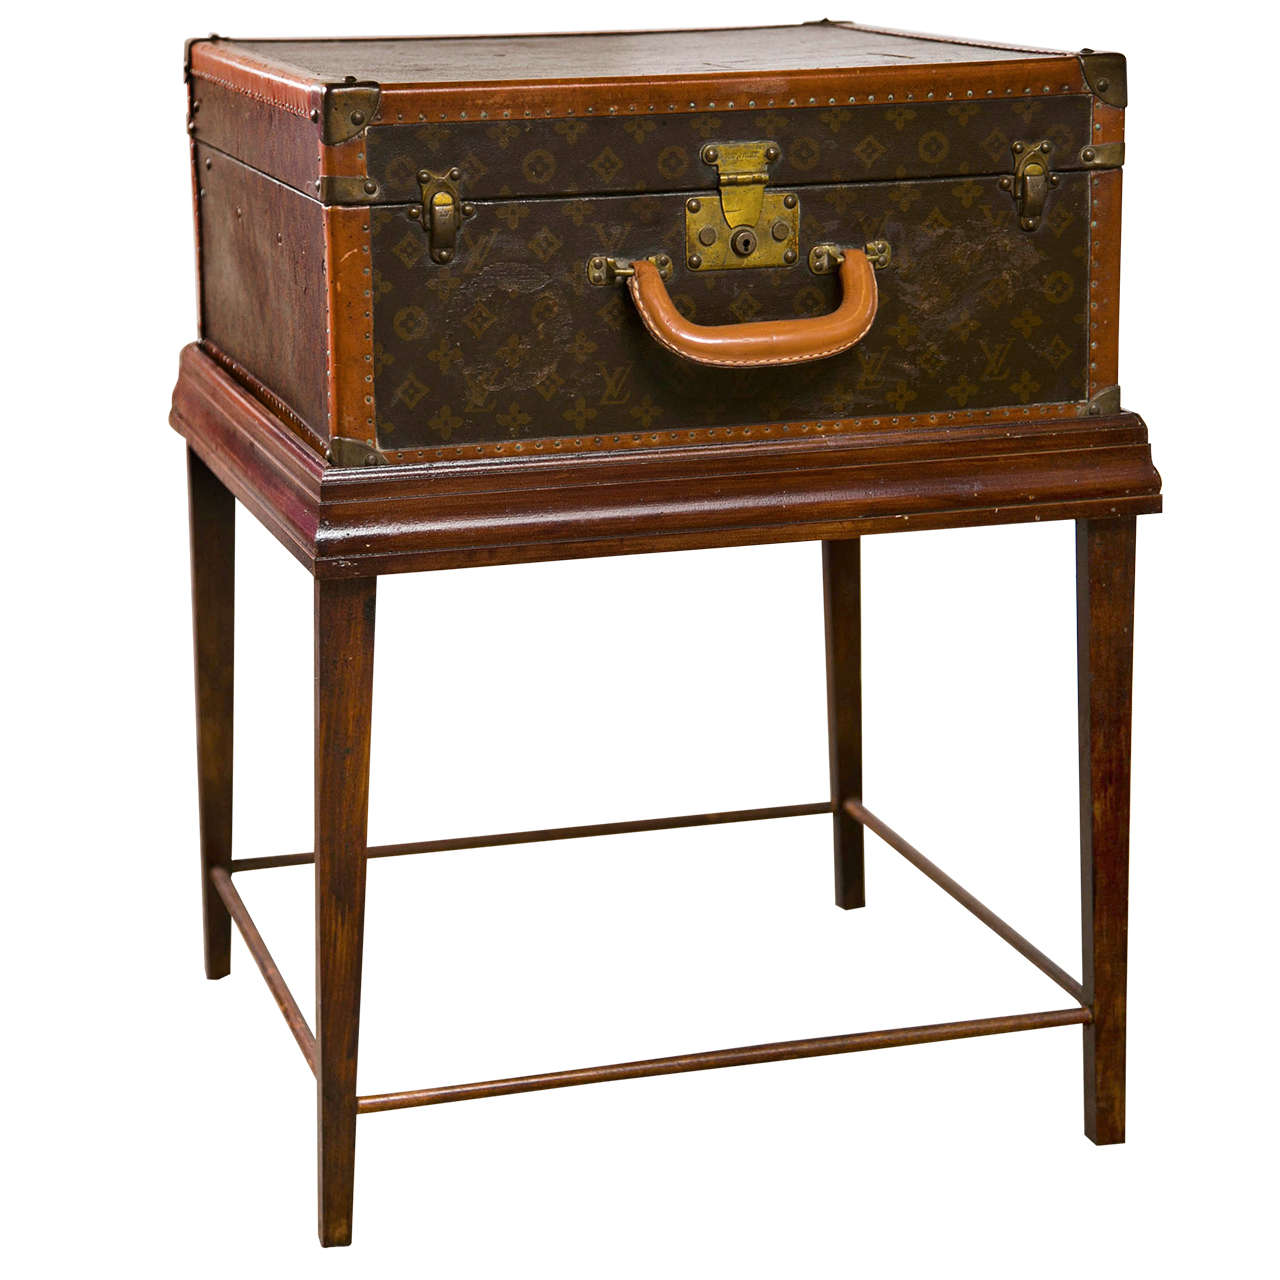 Louis Vuitton Suitcase Table At 1stdibs